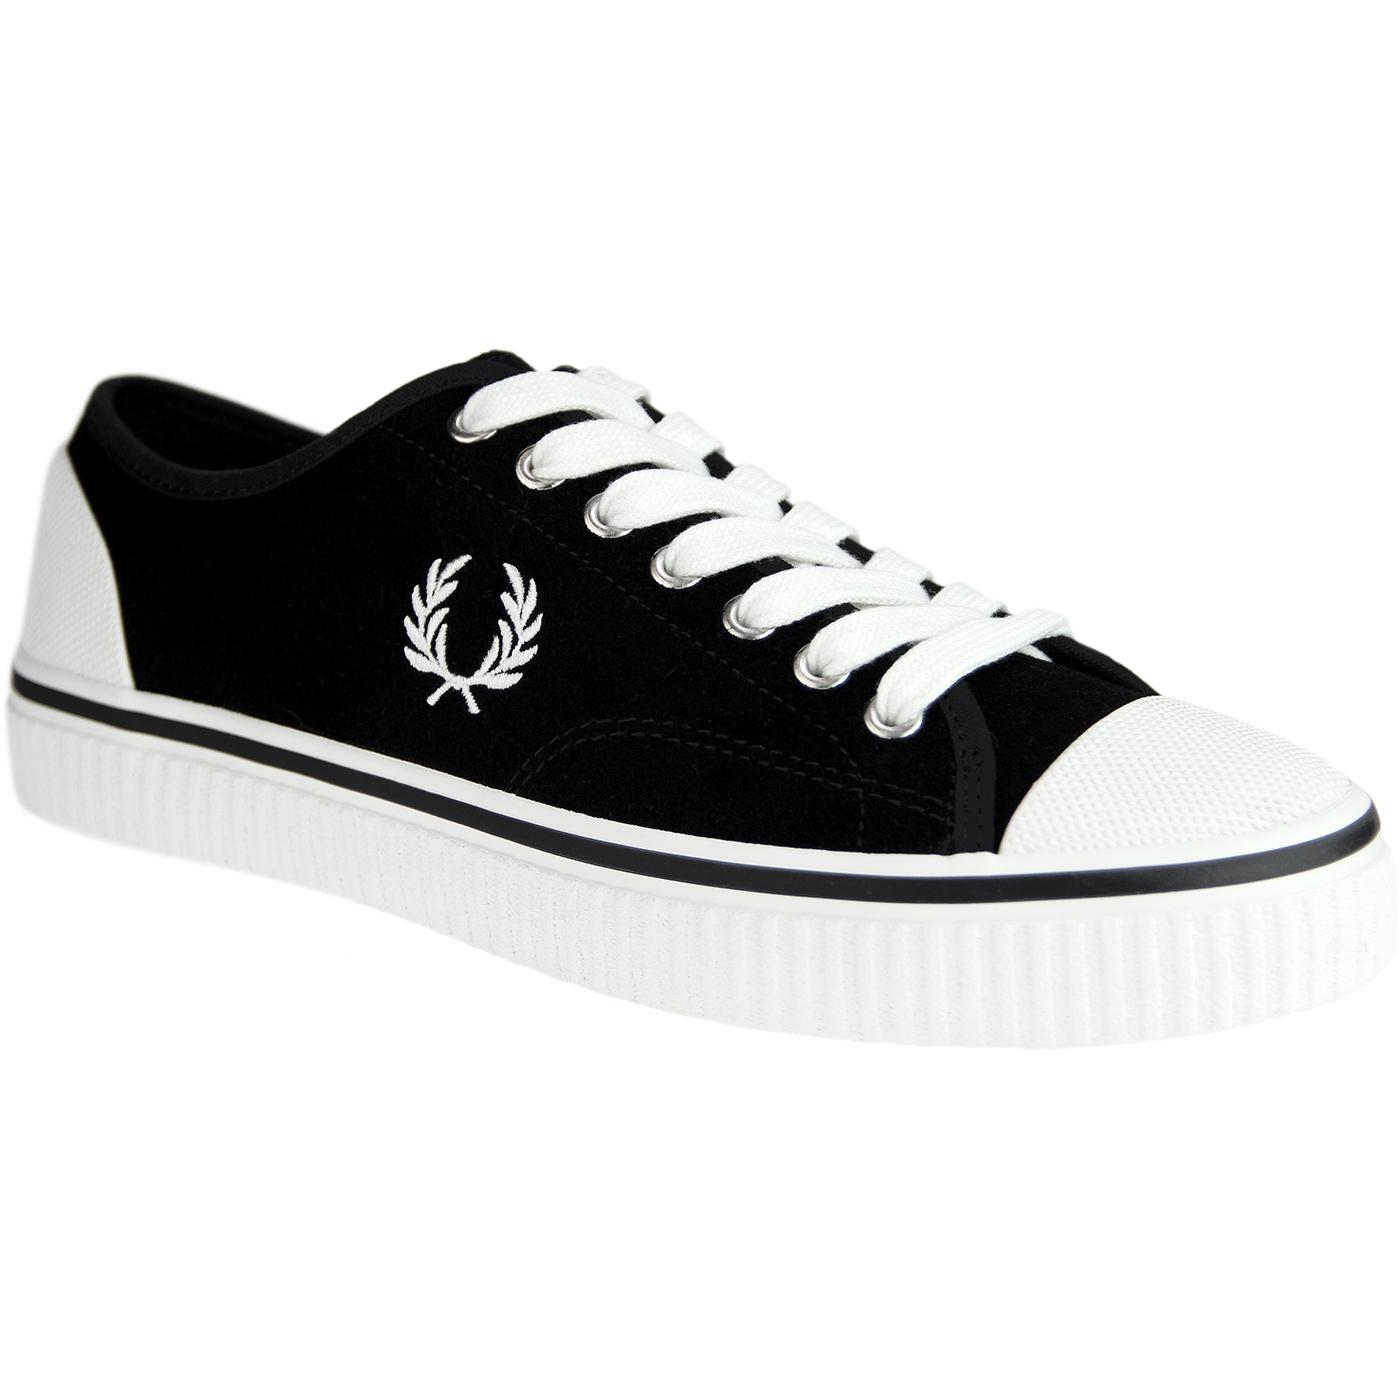 Hughes FRED PERRY Retro Low Suede Trainers (Black)